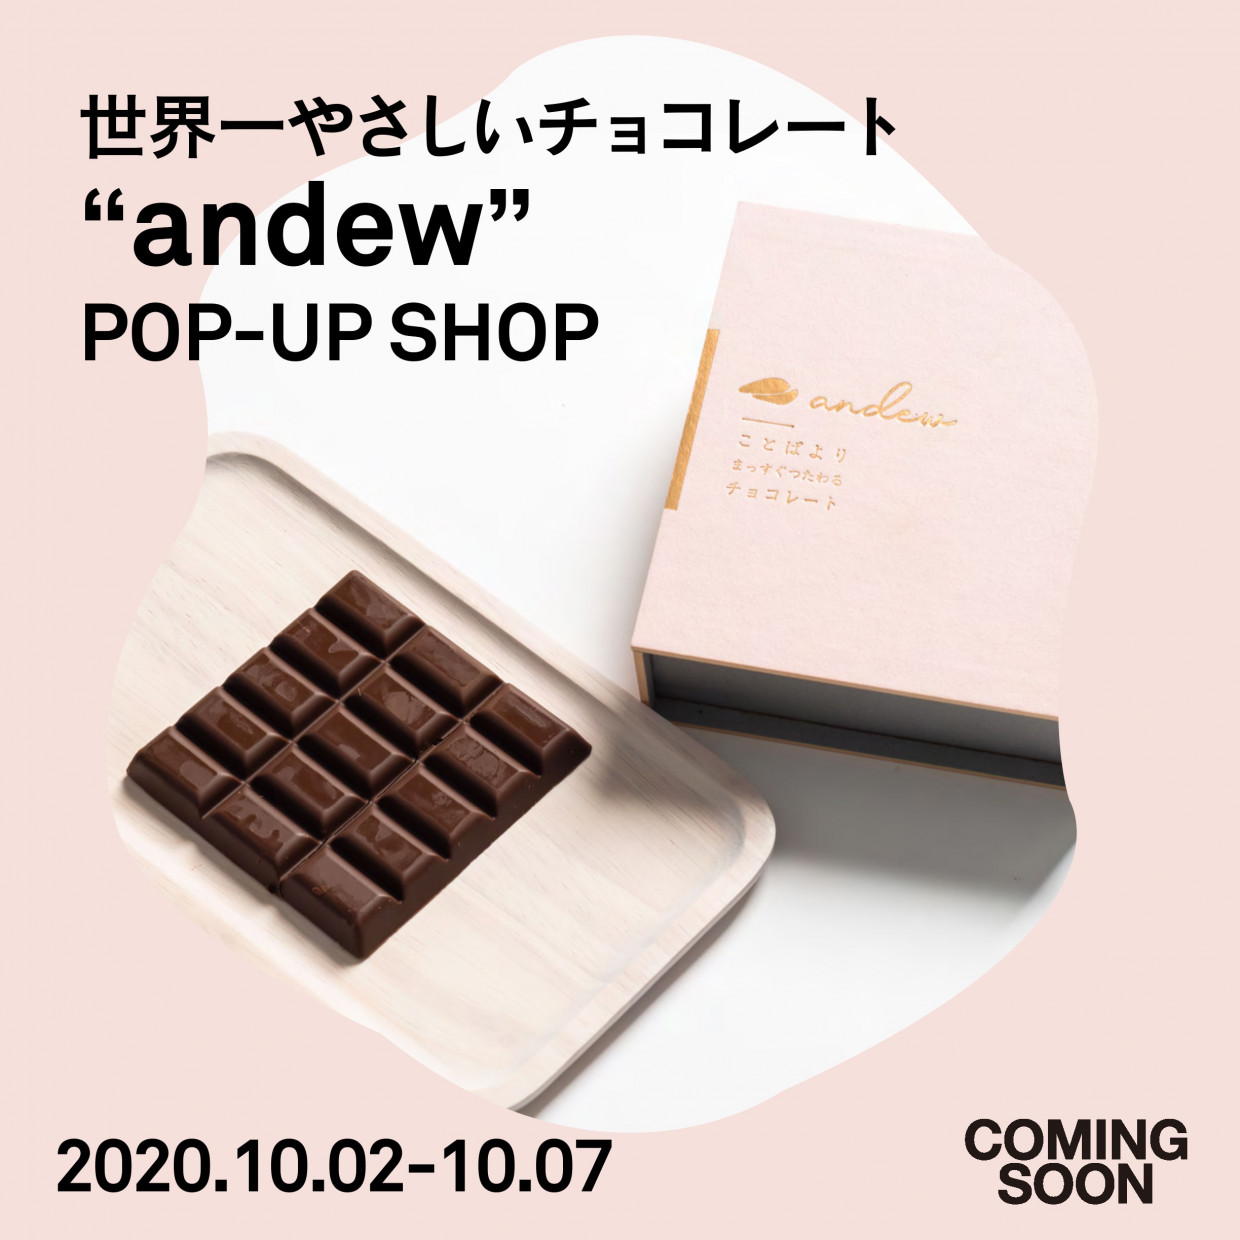 World's easiest chocolate andew POP-UP SHOP where we came over to from Hokkaido